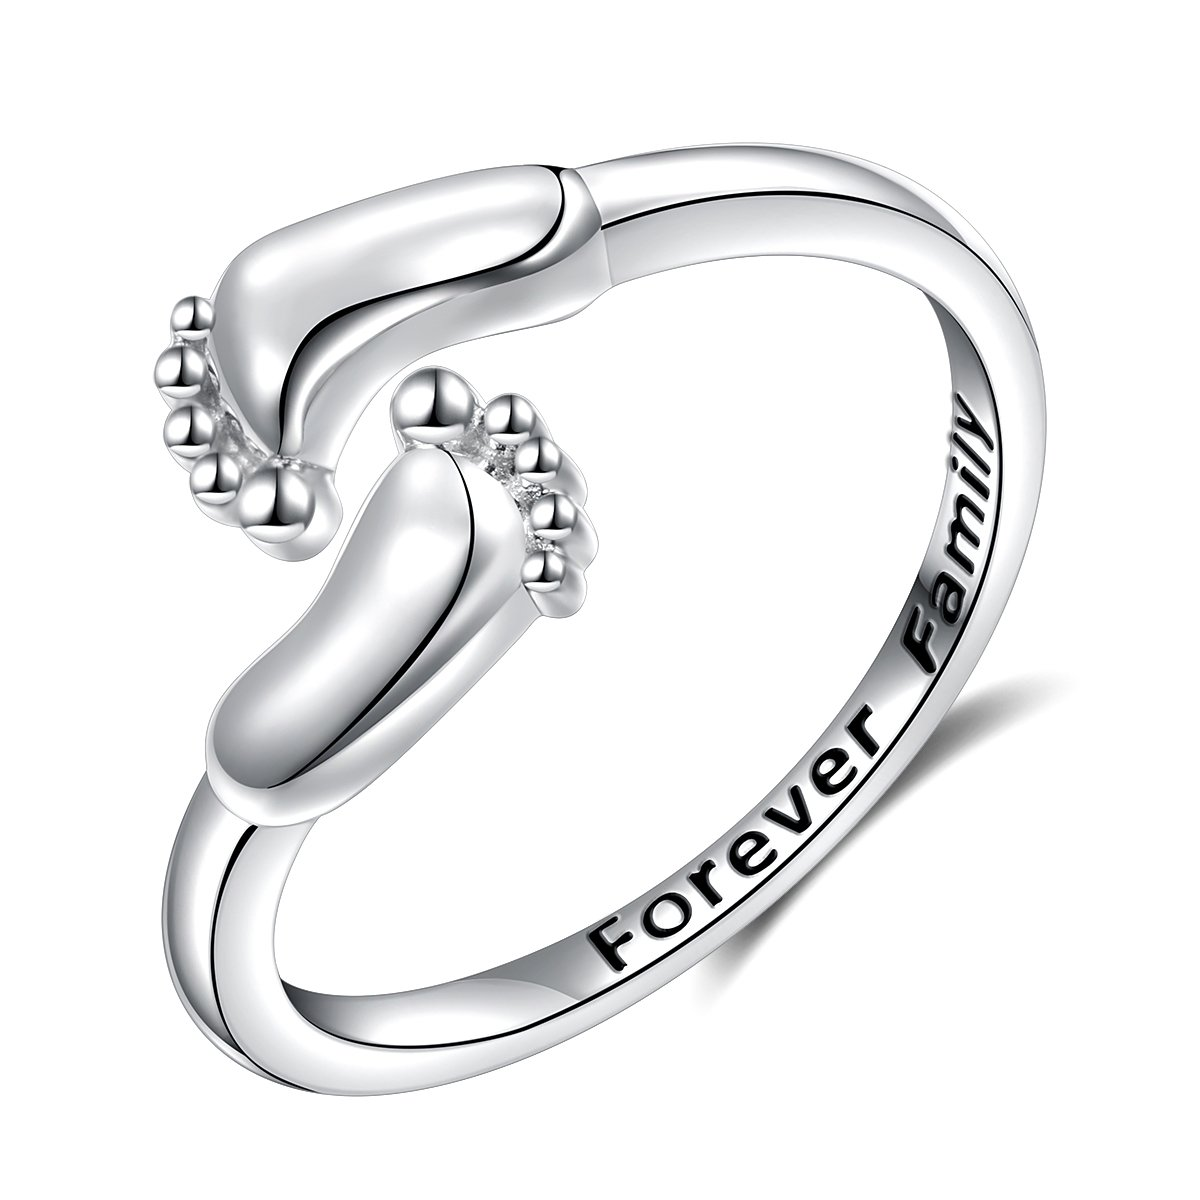 LINLIN FINE JEWELRY Baby Feet Ring 925 Sterling Silver Forever Family Engraved Mother's Love Cute Adjustable Open Ring Gift for Women, Size 7